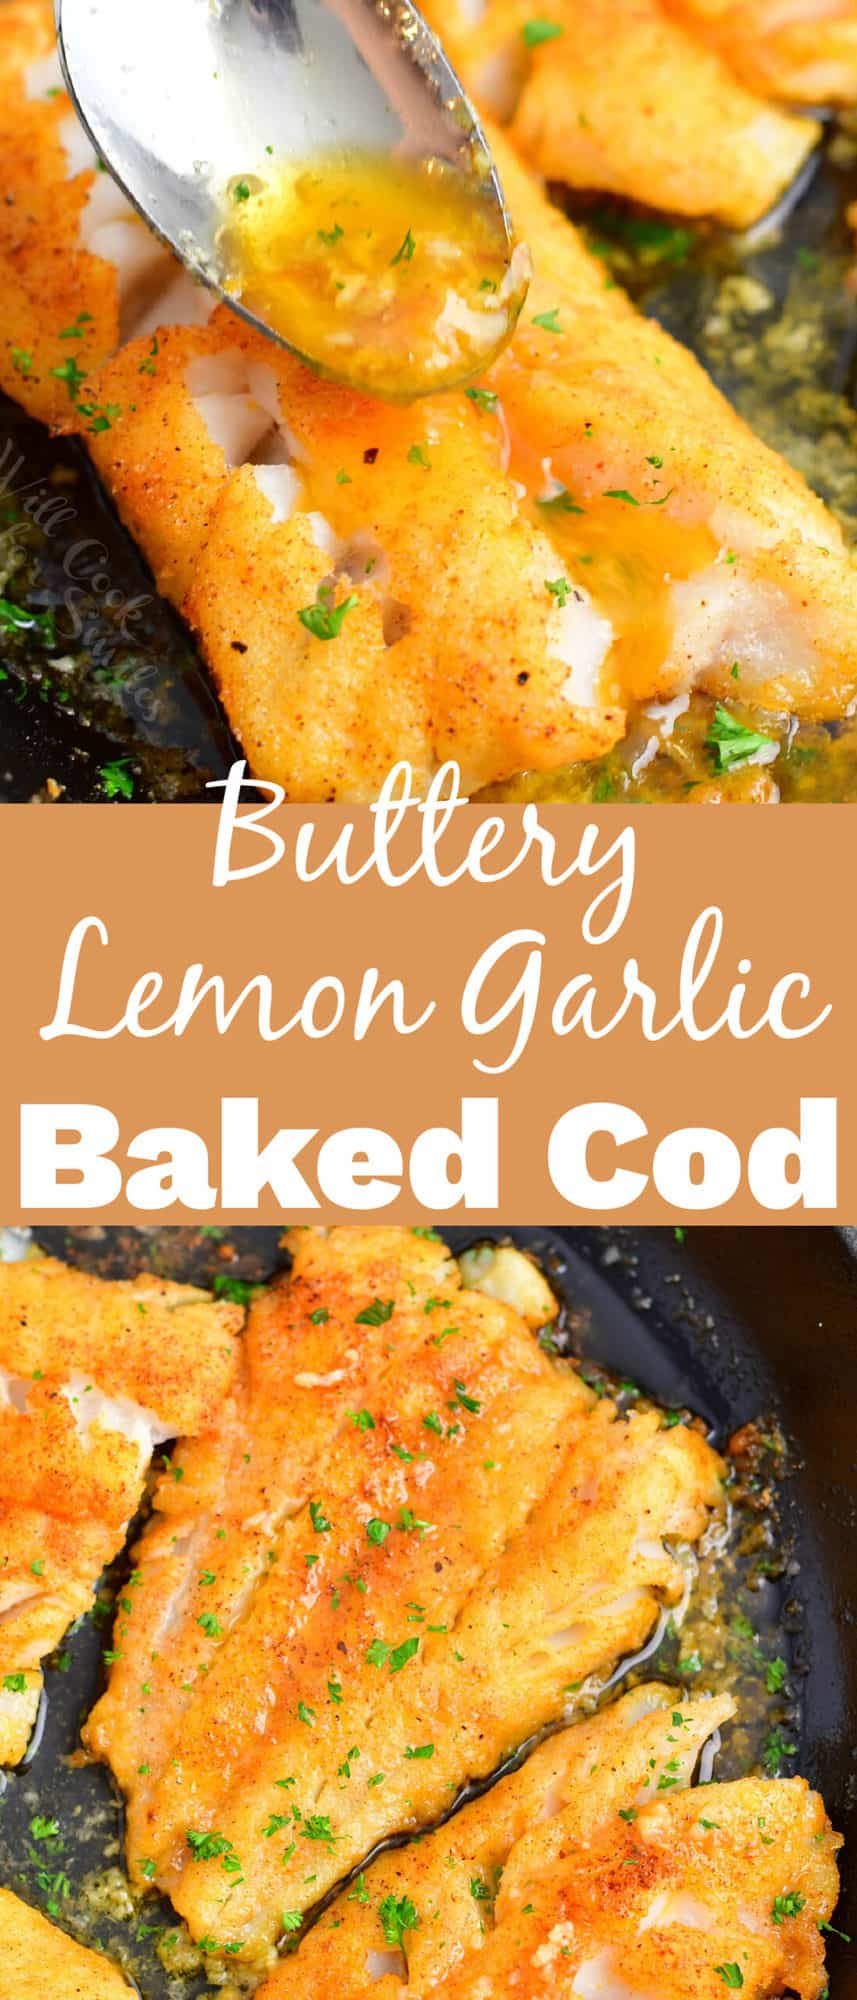 title and collage image of two photos of pouring sauce on baked cod and baked cod in a pan